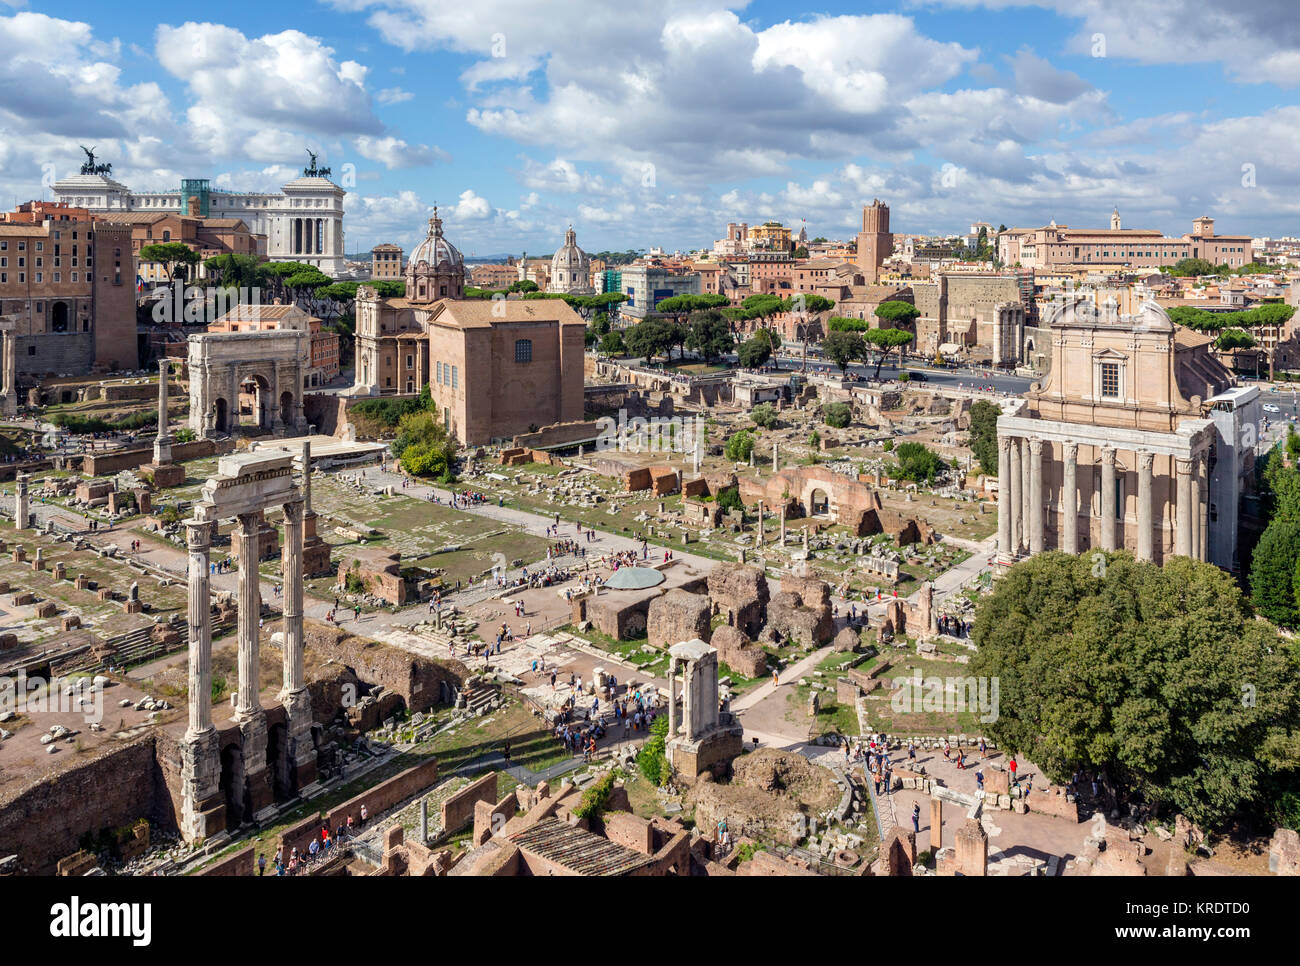 Rome, Forum. View from the Palatine Hill over the ancient ruins of the Roman Forum (Foro Romano), Rome, Italy - Stock Image